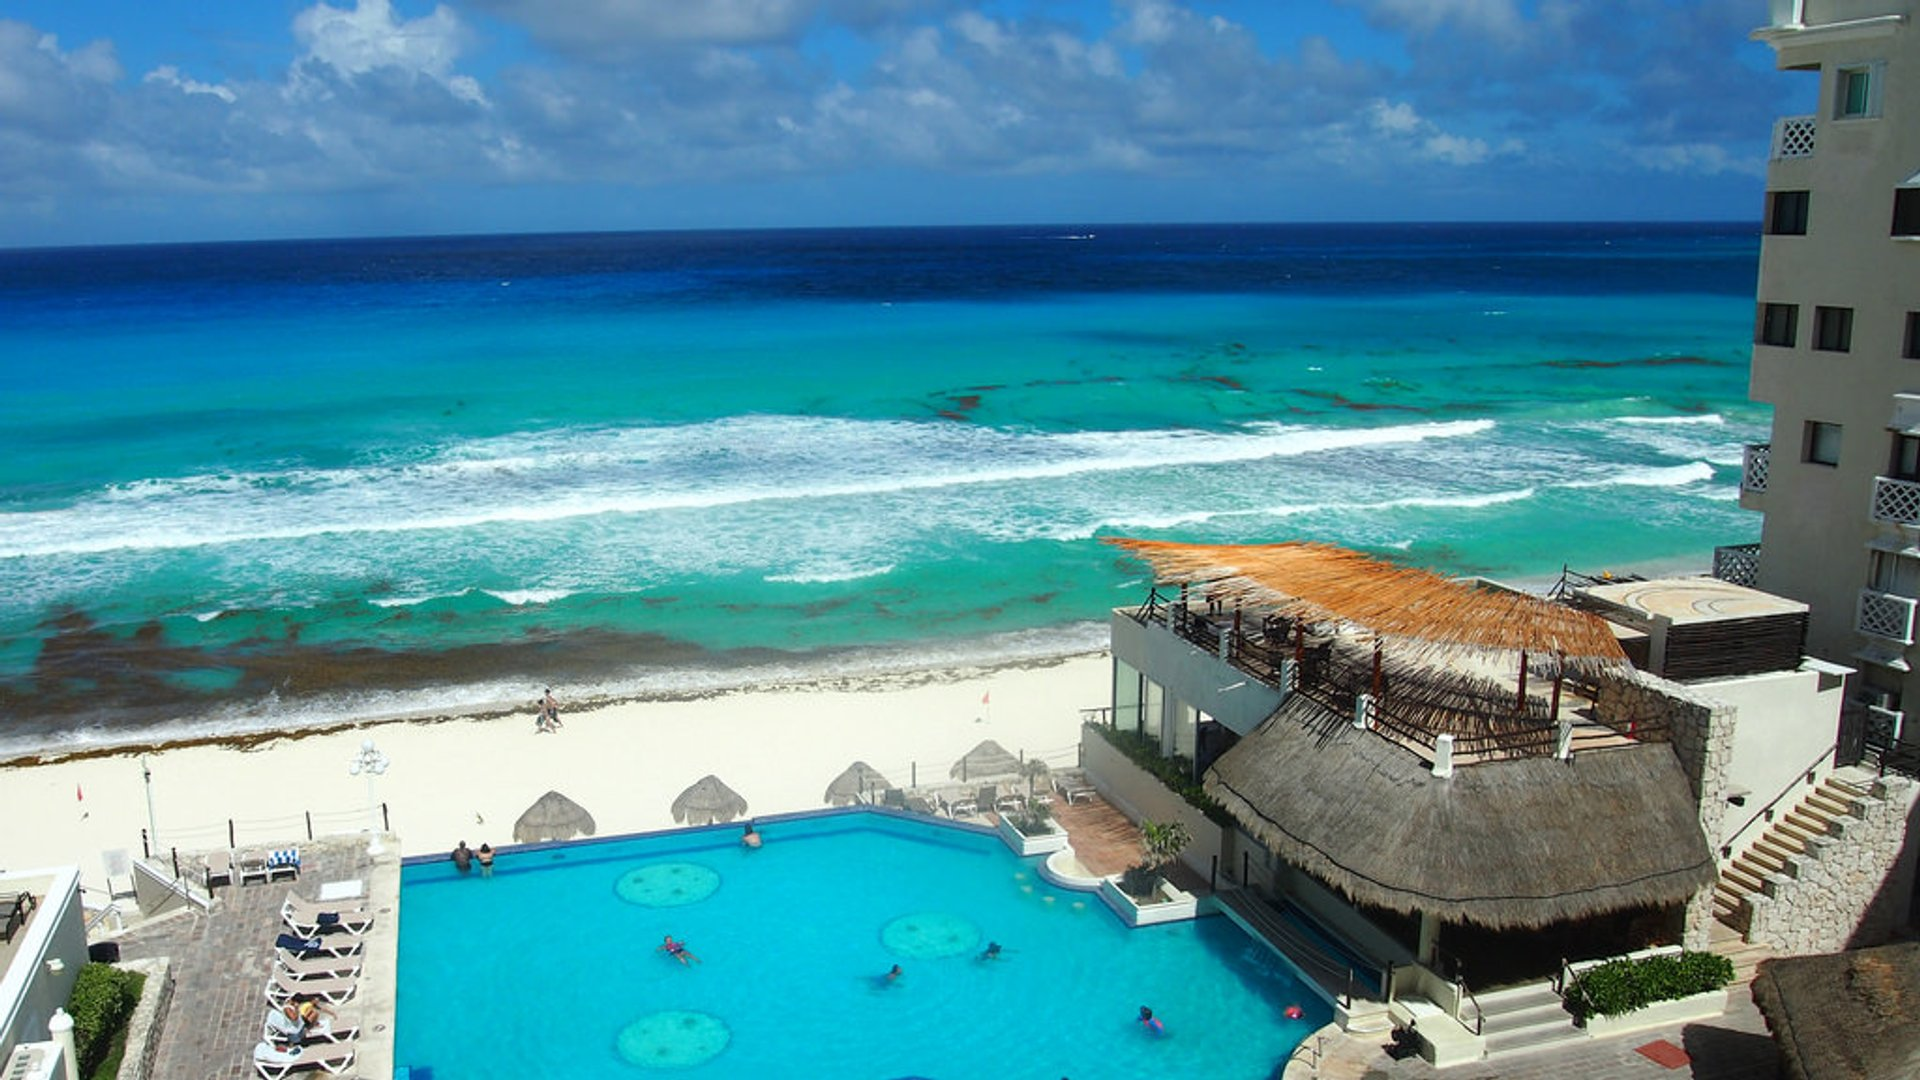 Rain and Hurricane Season (Summer) in Cancun - Best Season